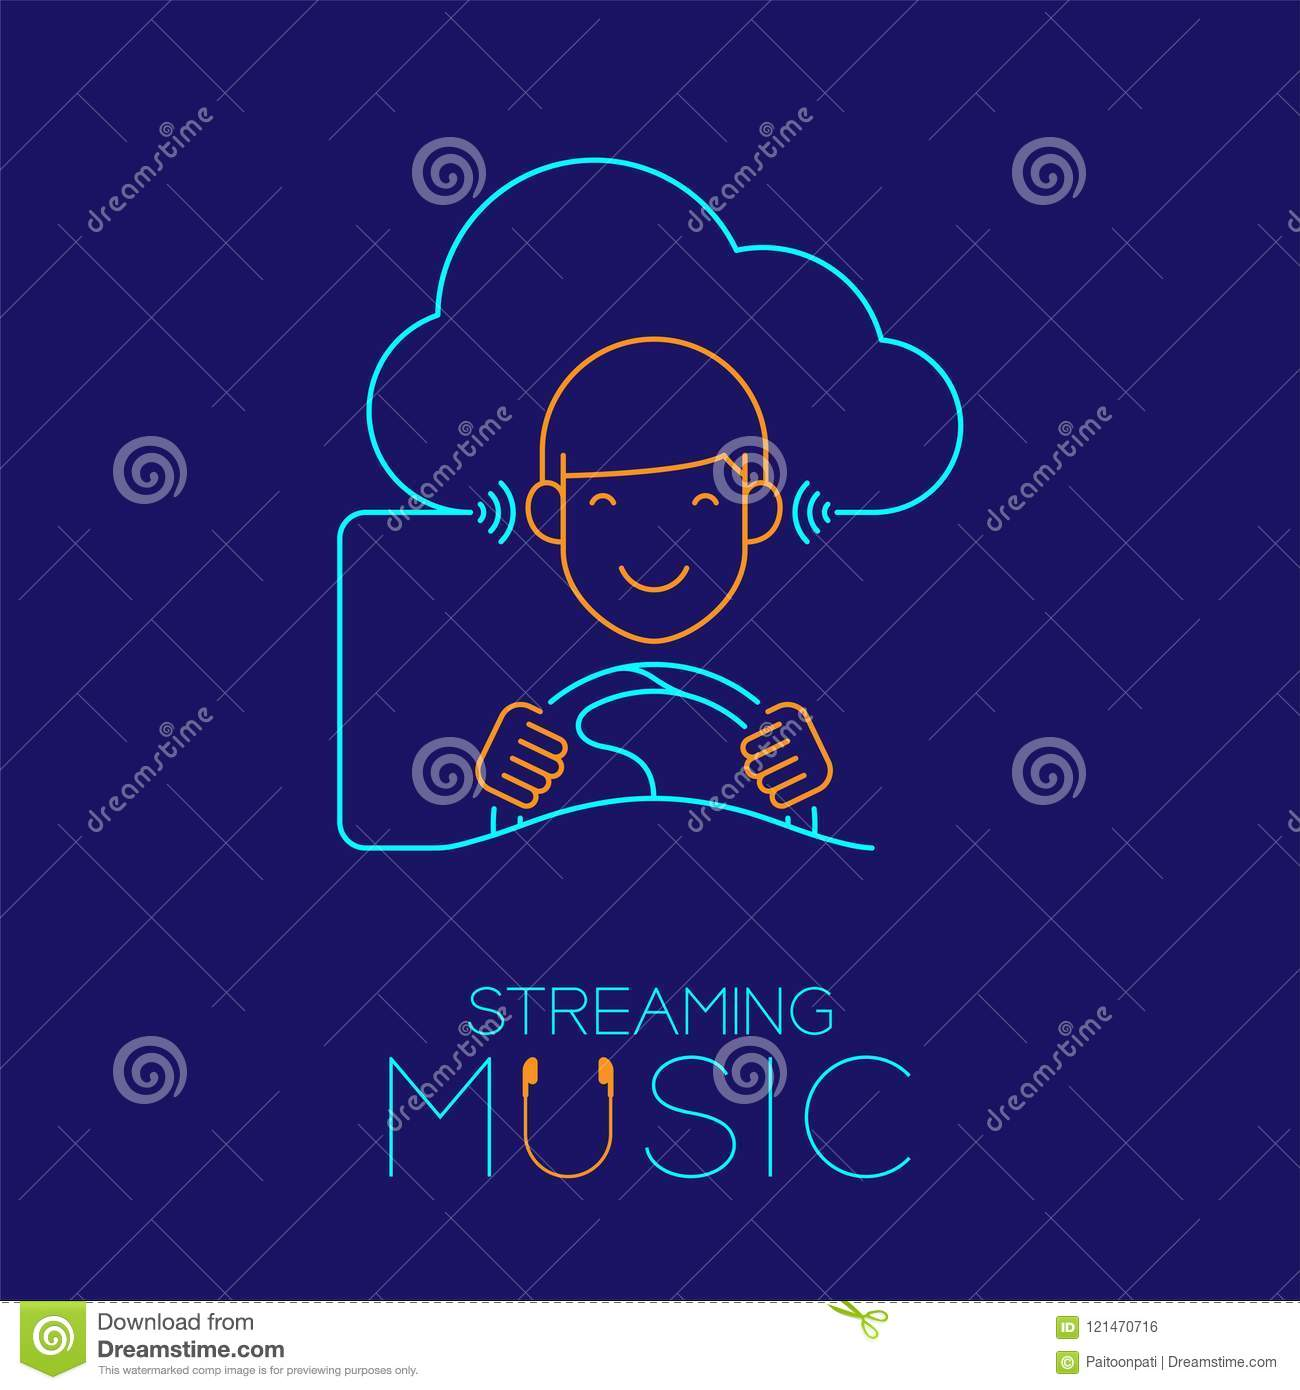 Man drive car with cloud connect, Steering wheel shape made from cable, Streaming music concept design illustration